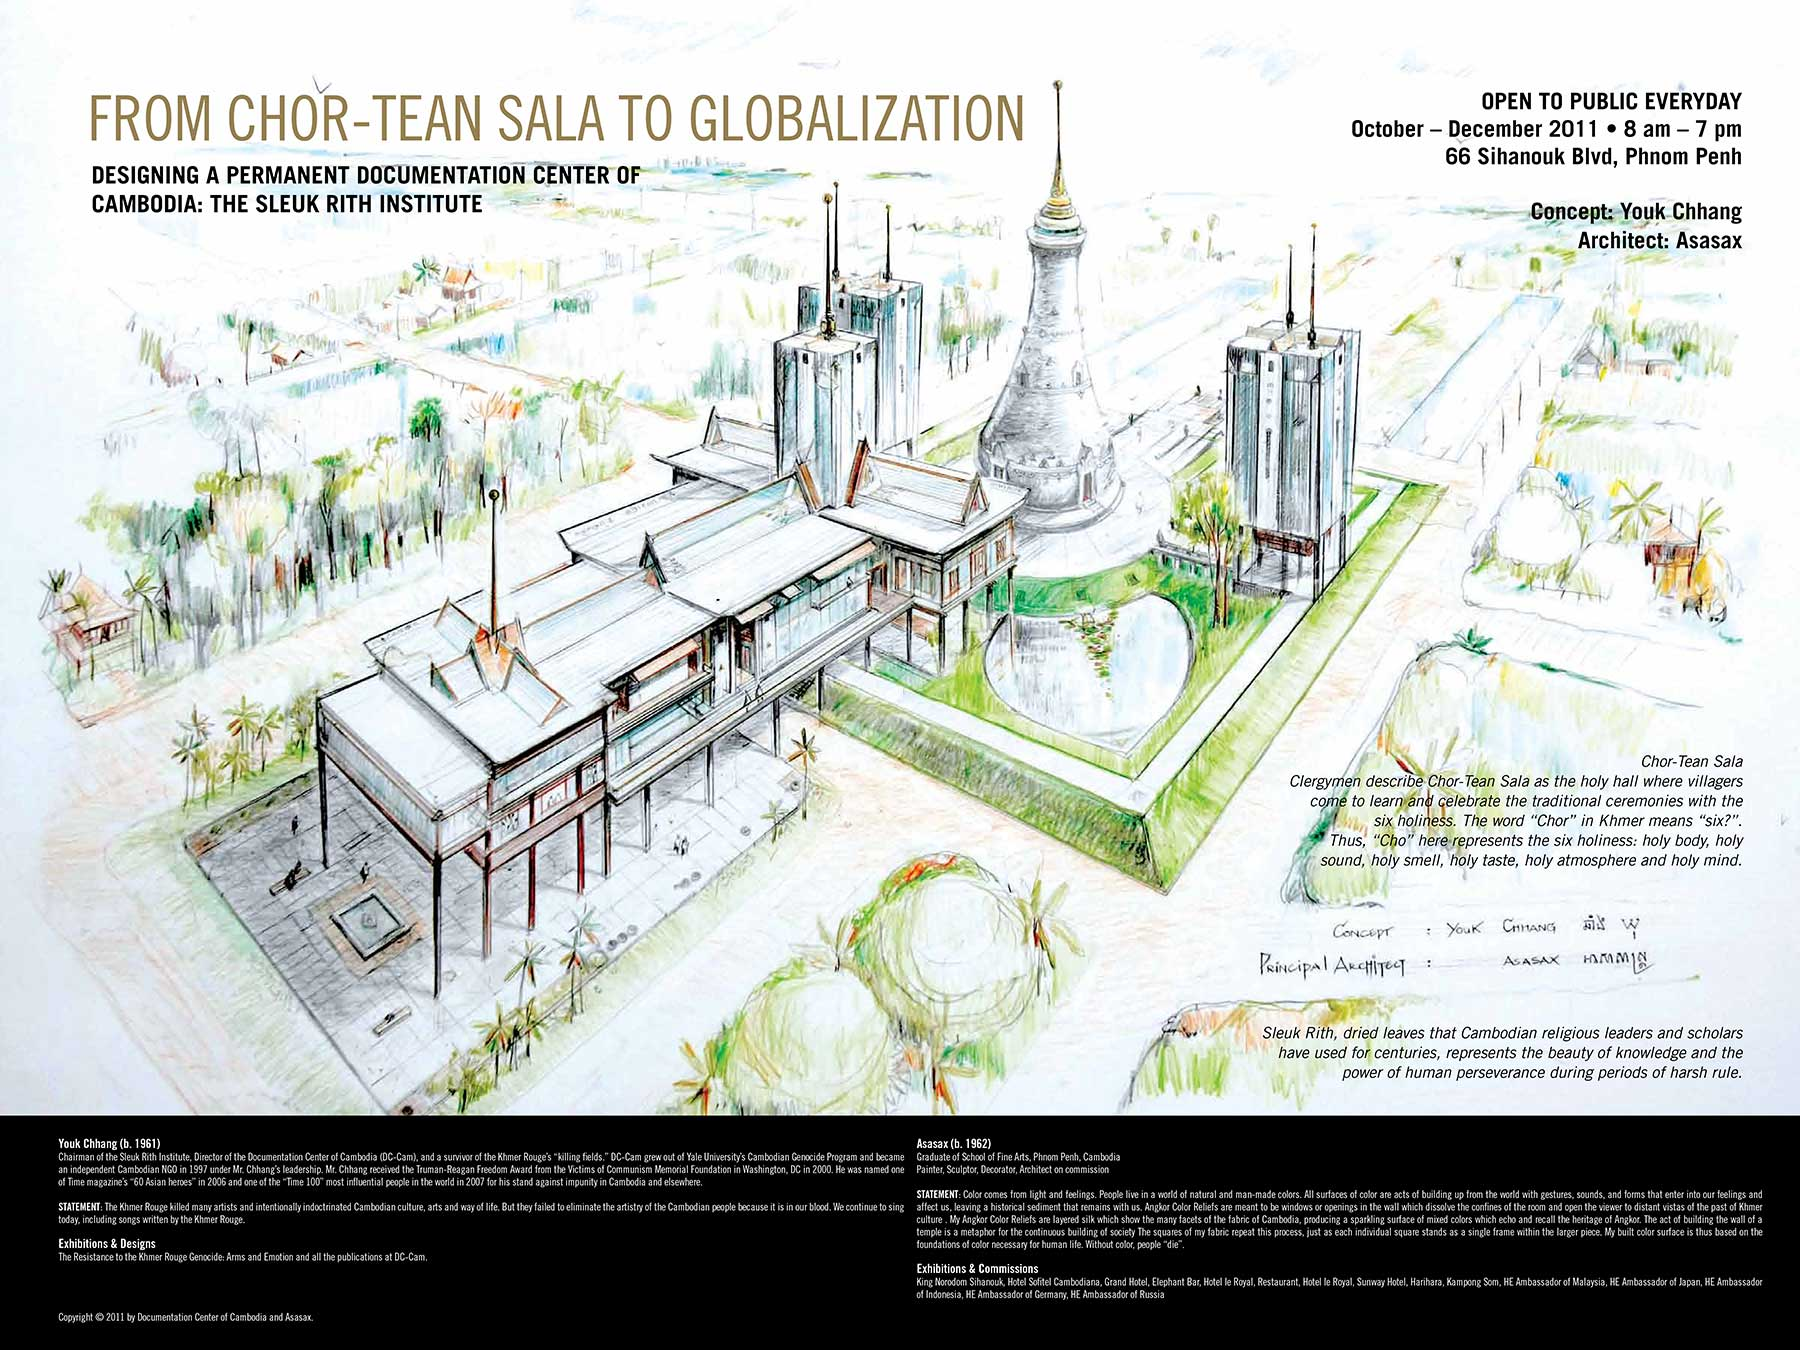 FROM SALA CHOR TEAN TO GLOBALIZATION (2011)